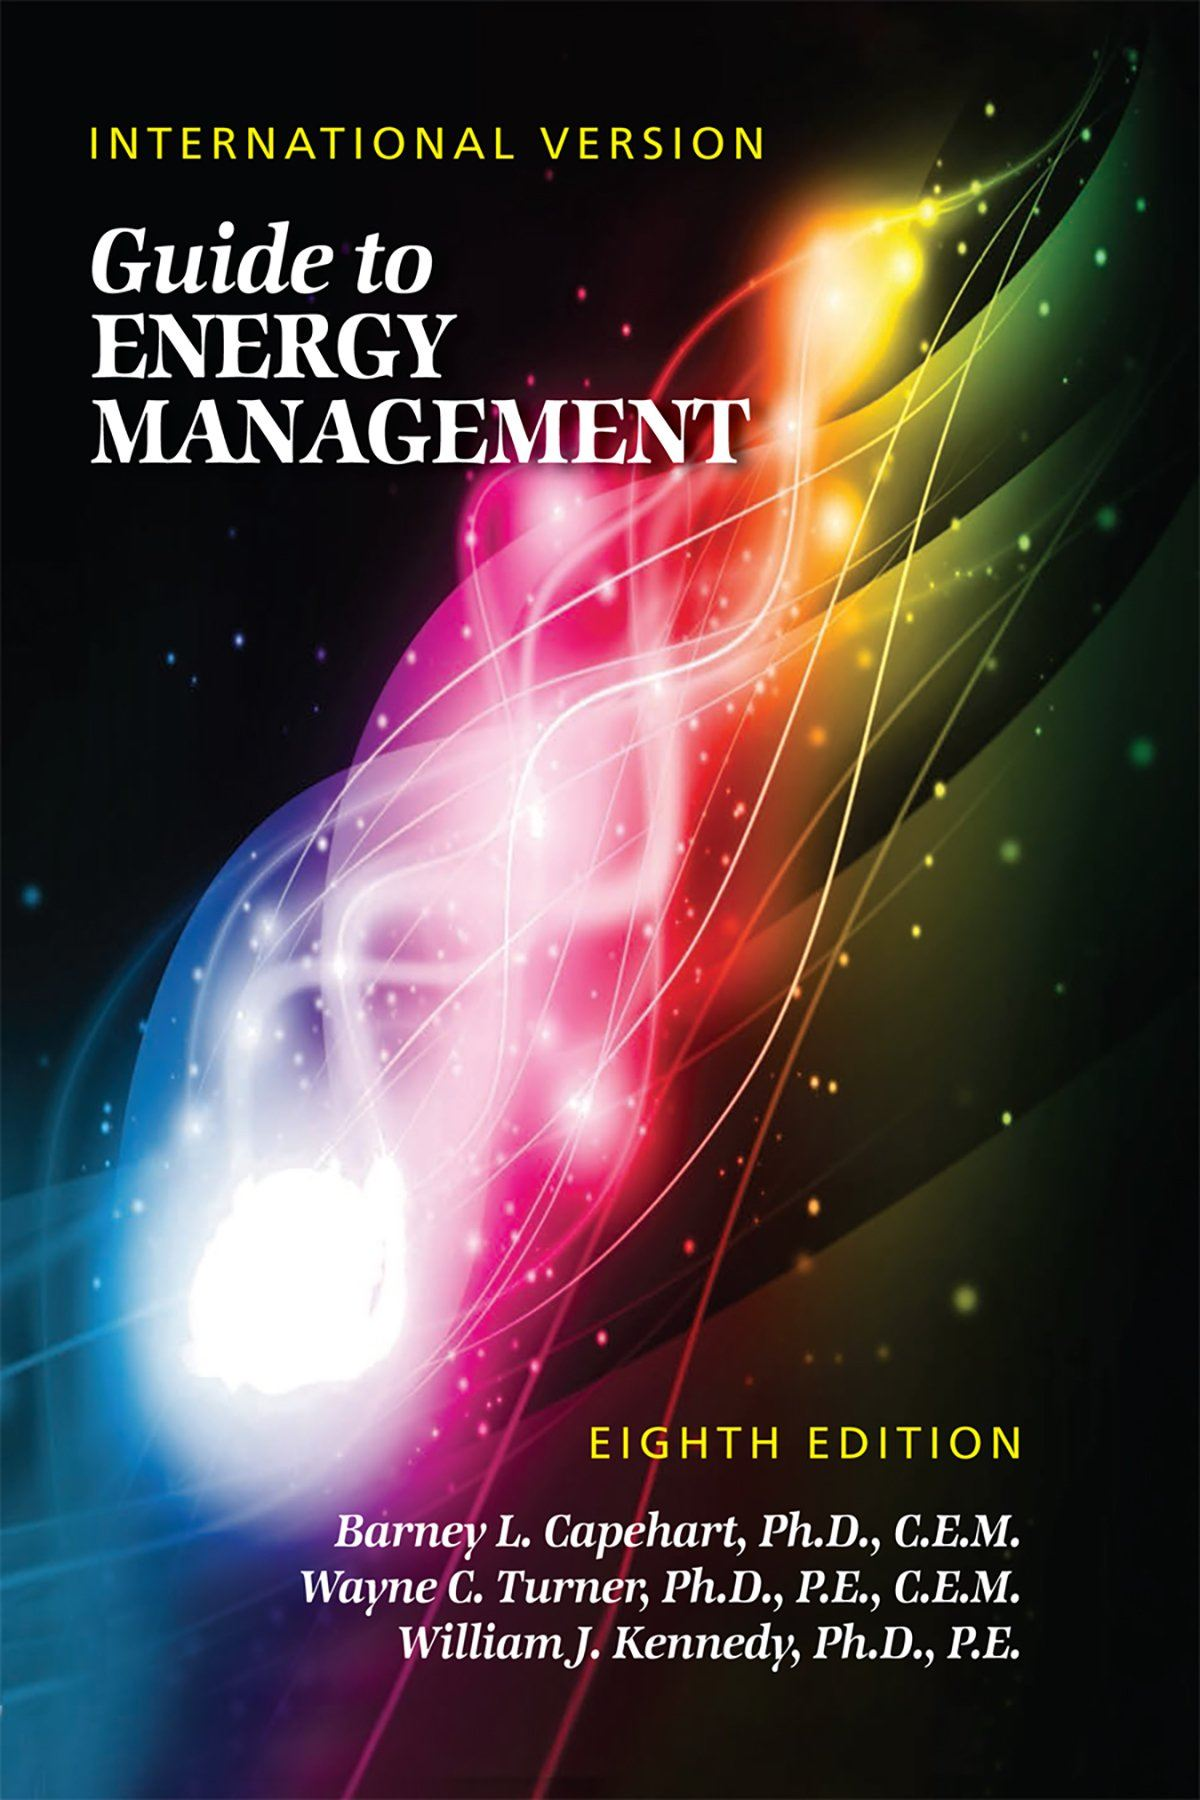 Guide To Energy Management, 8th Edition (International Version) - AEE  Programs ...